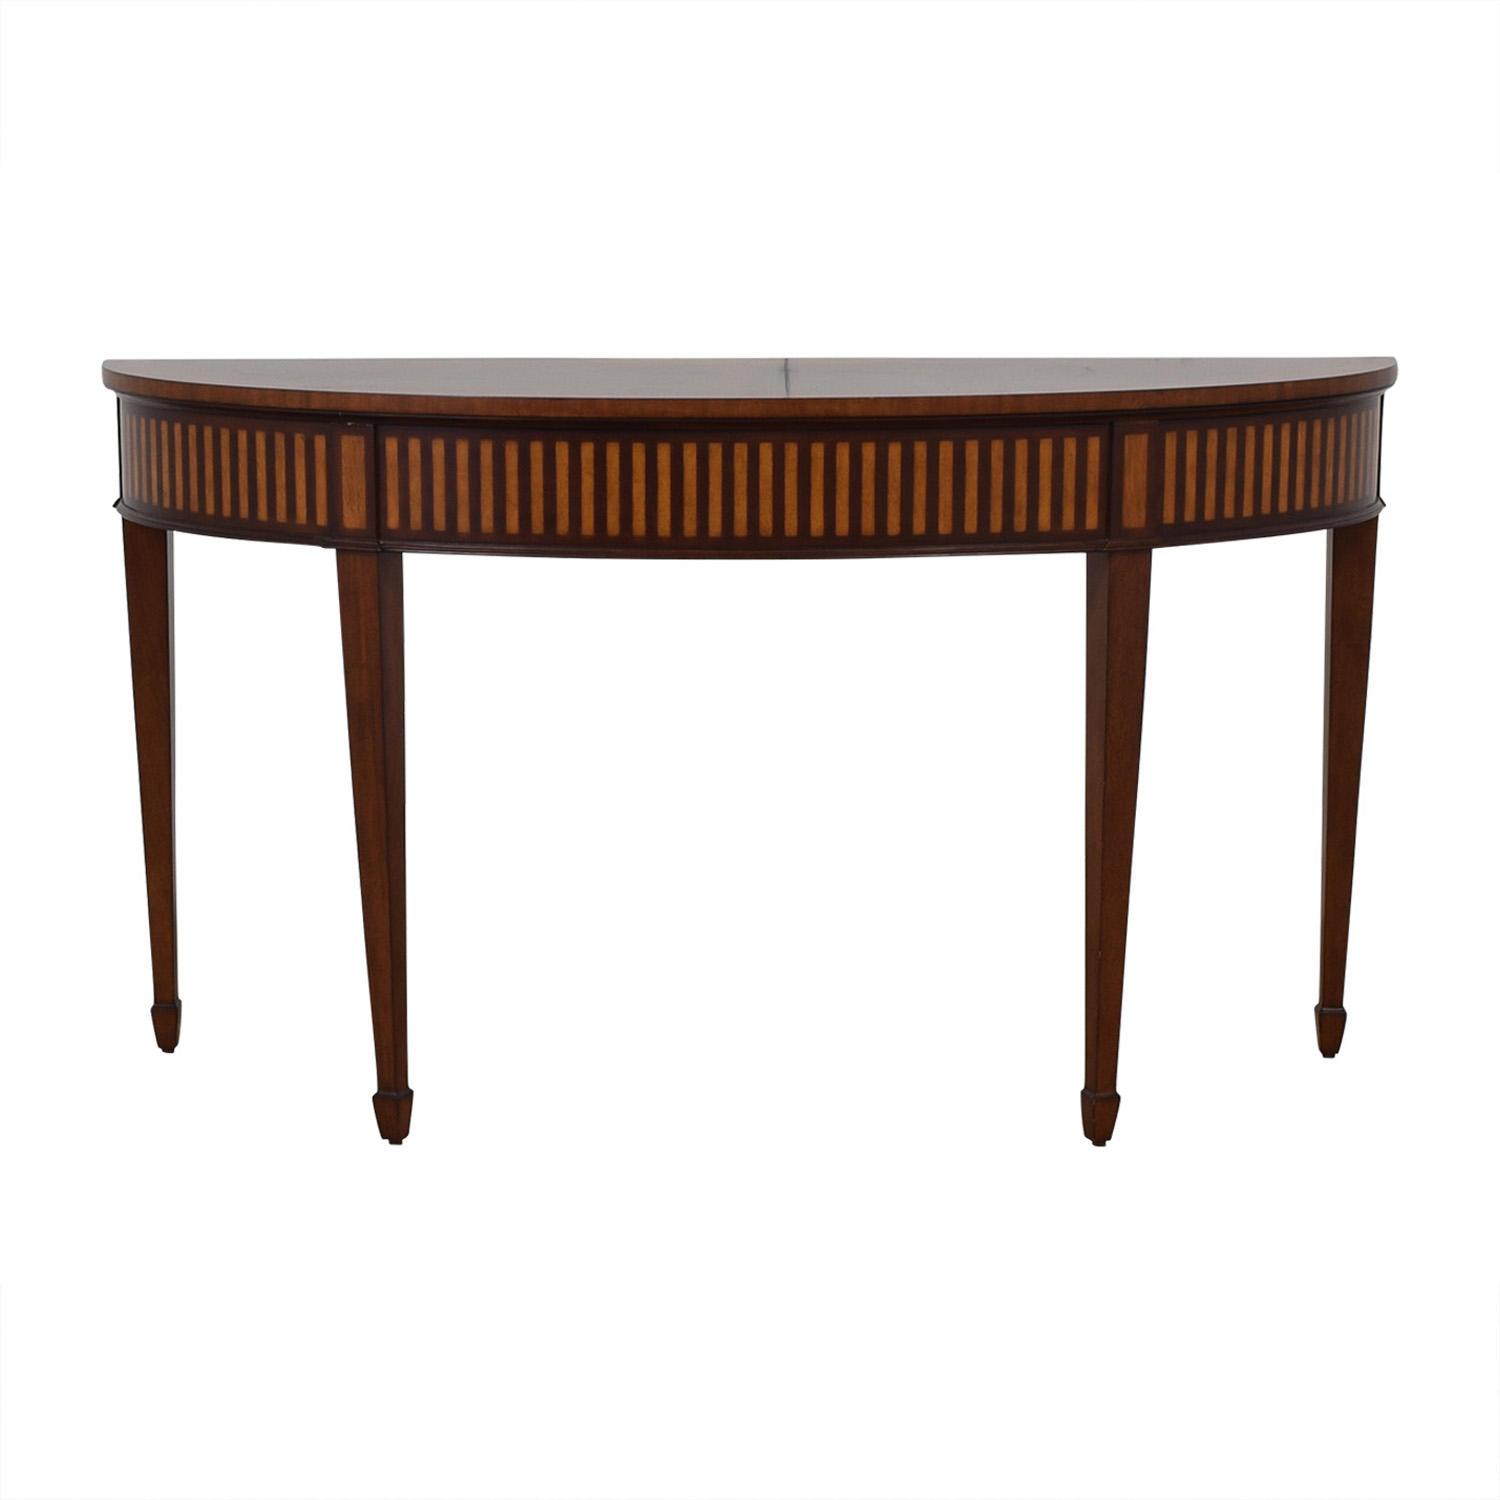 Ethan Allen Newman Demilune Sofa Table / Tables